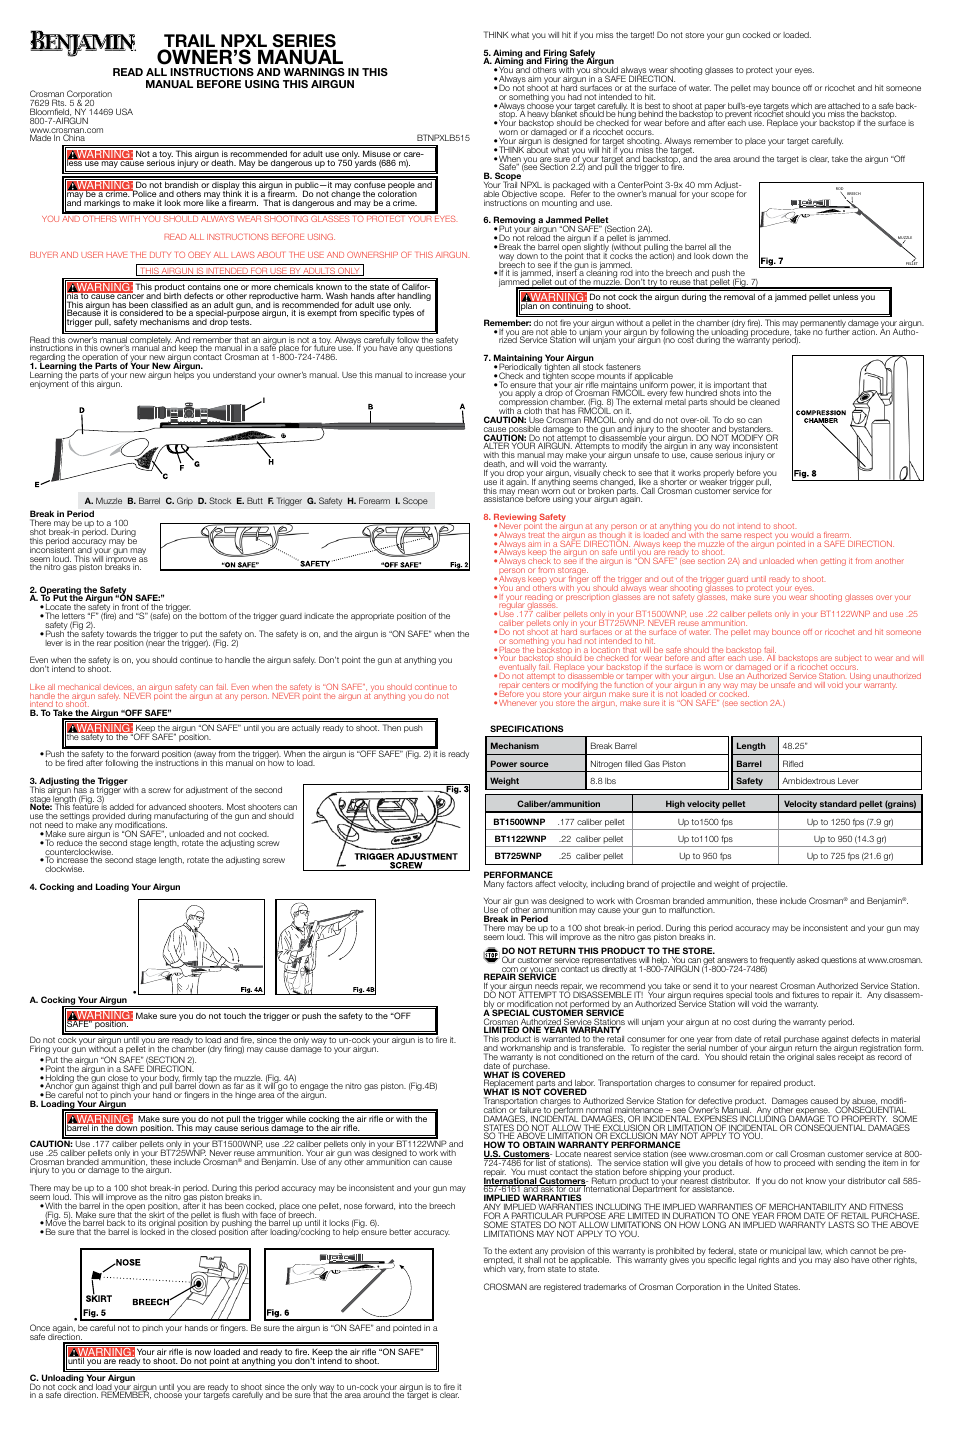 Crosman BT725WNP User Manual | 2 pages | Also for: BT1500WNP